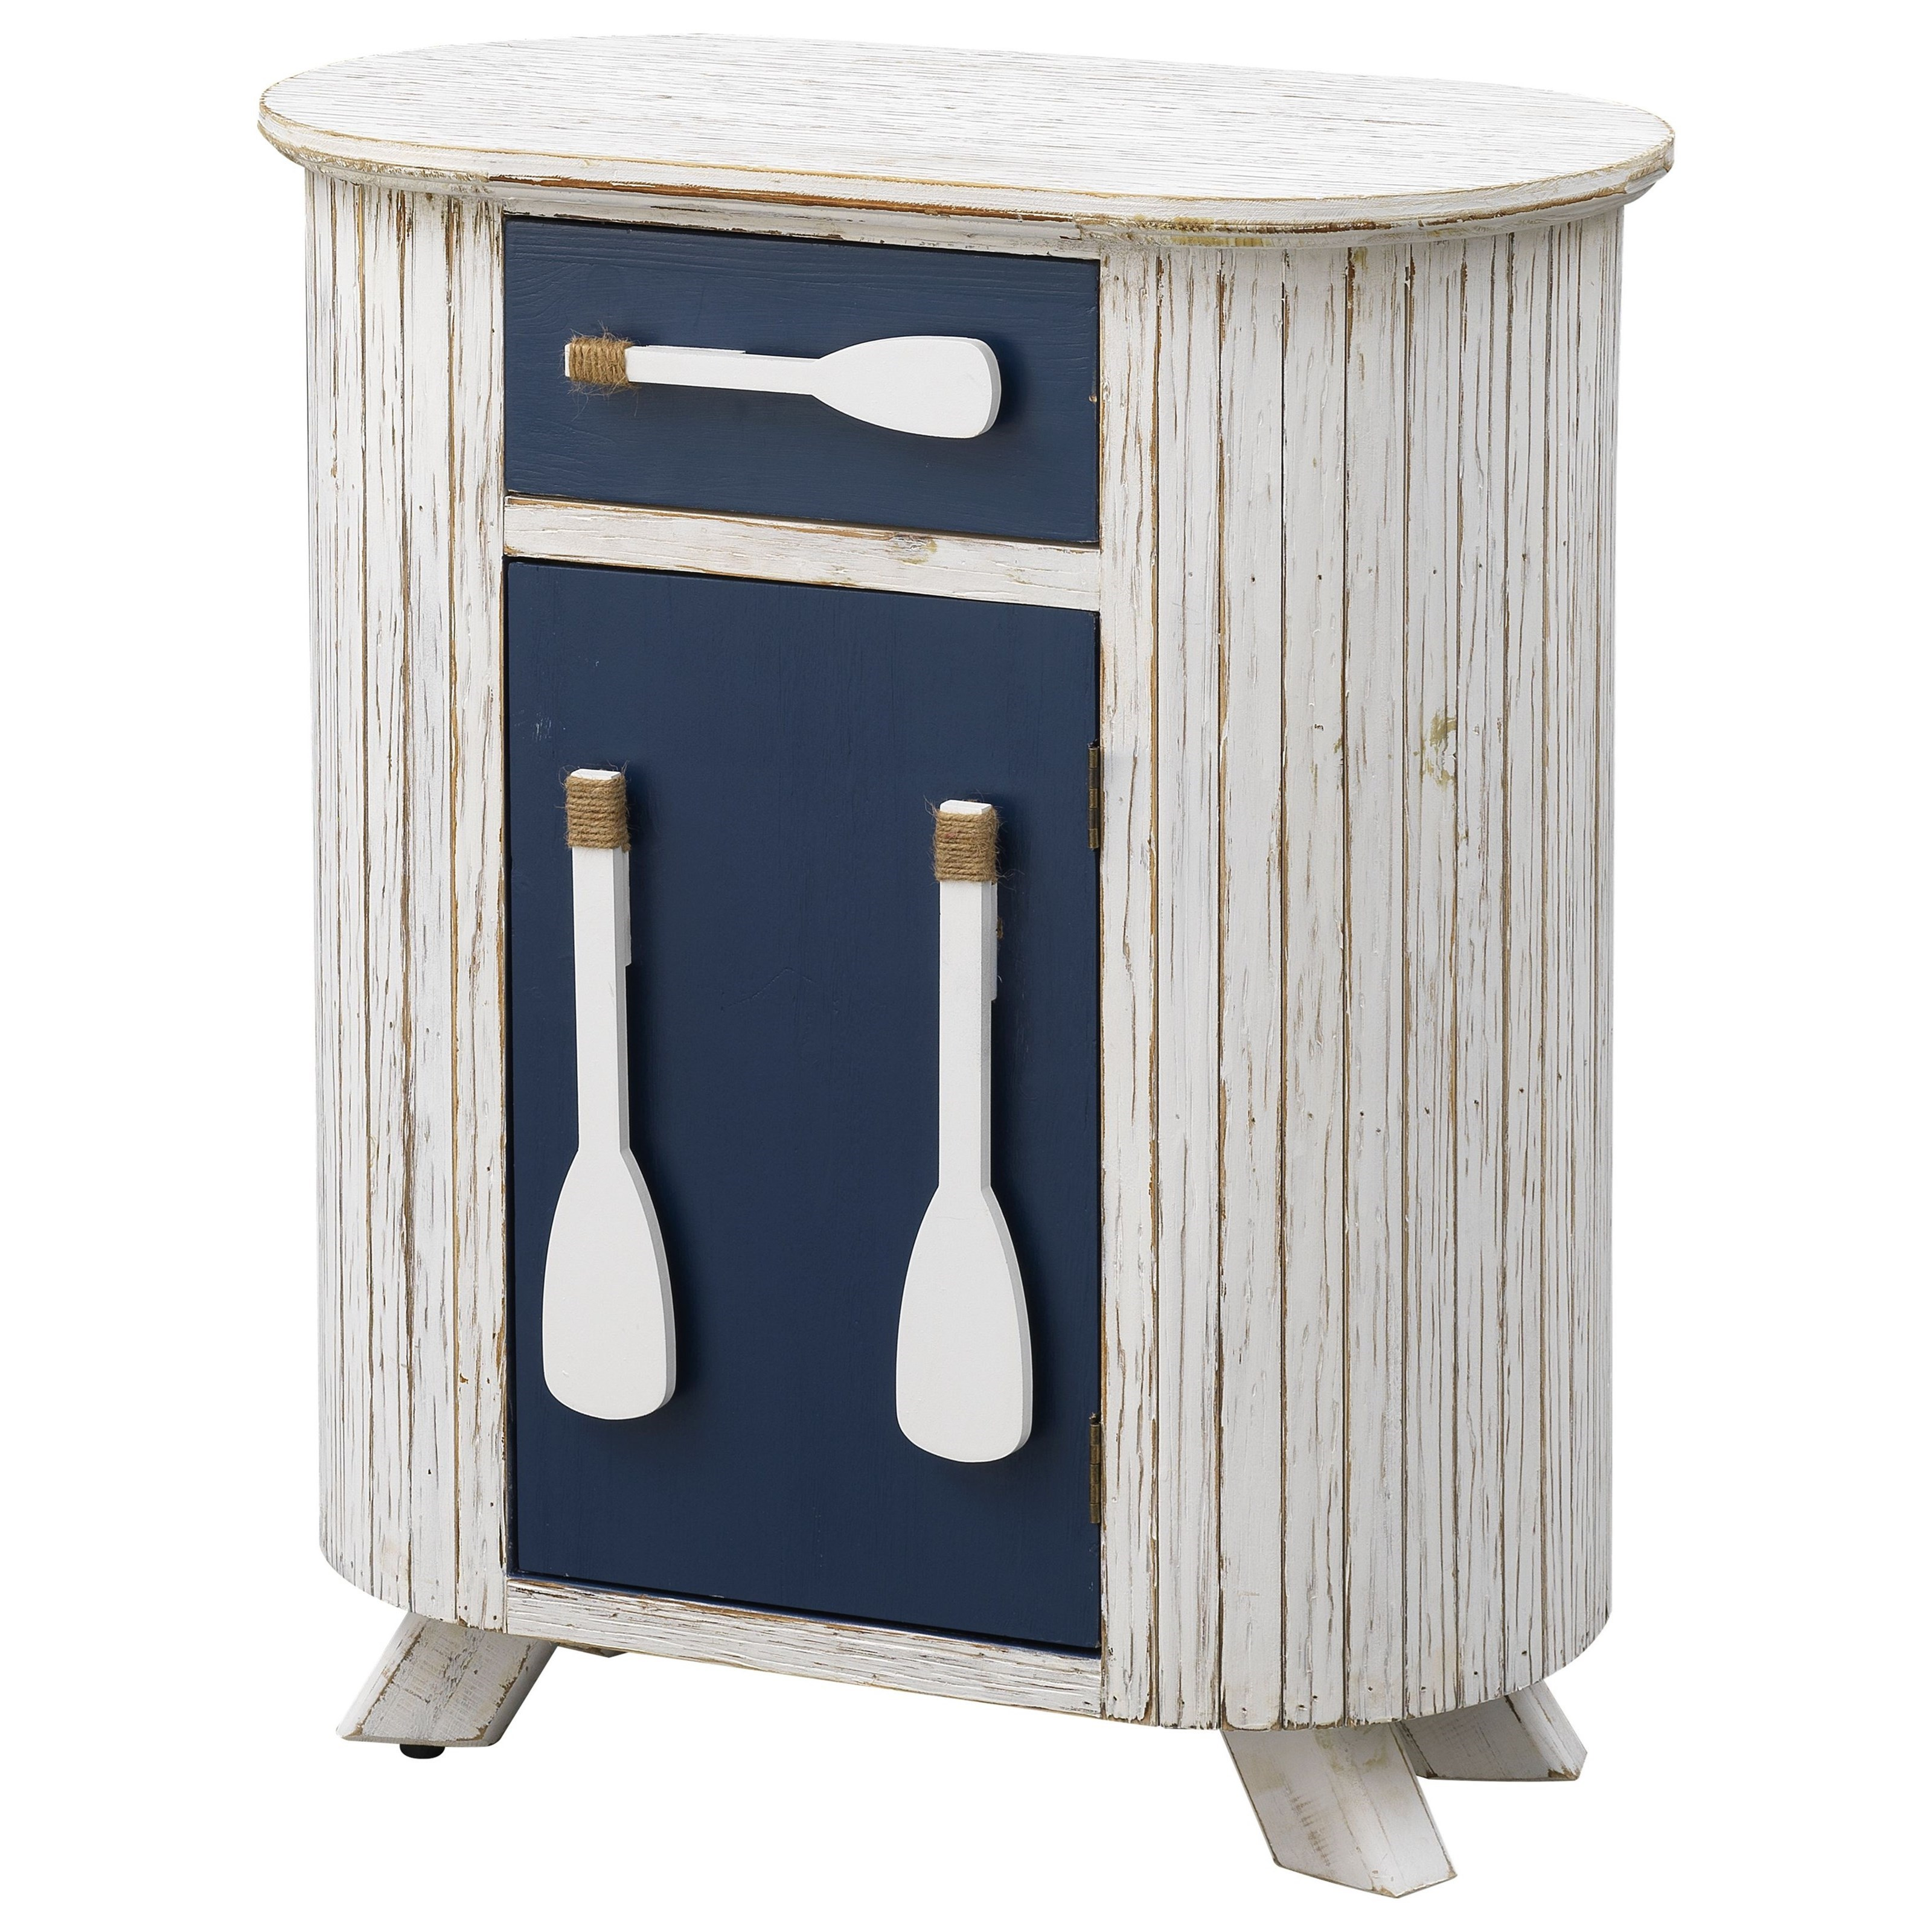 Pieces in Paradise 1-Drawer, 1-Door Accent Cabinet by Coast to Coast Imports at Bullard Furniture